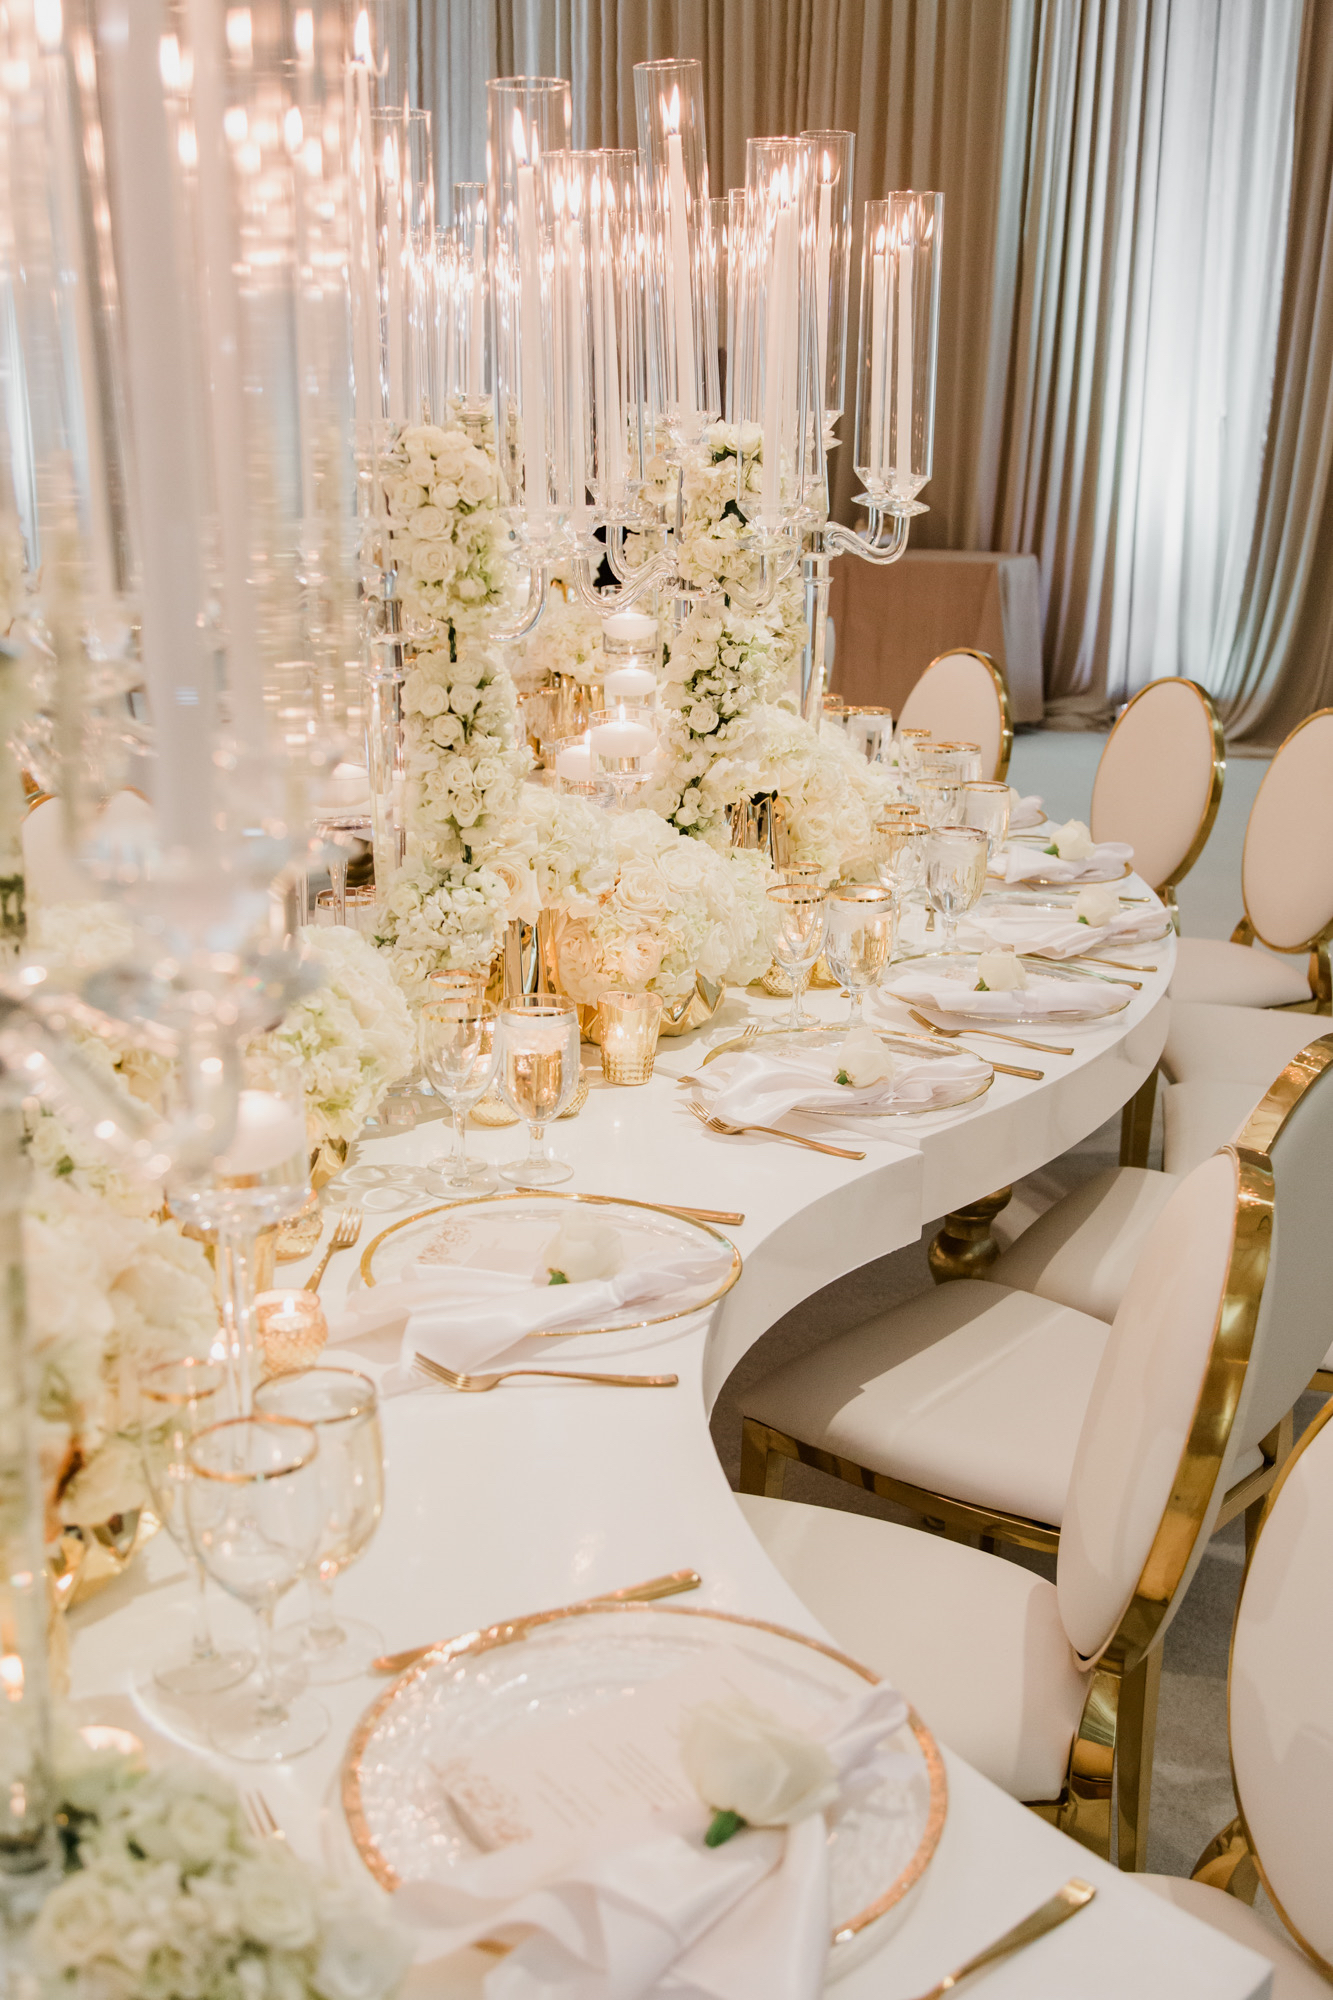 Long white serpentine wedding tables with gold rimmed chargers.  Las Vegas Wedding Planner Andrea Eppolito. www.andreaeppolitoevents.com. Image by Adam Frazier.